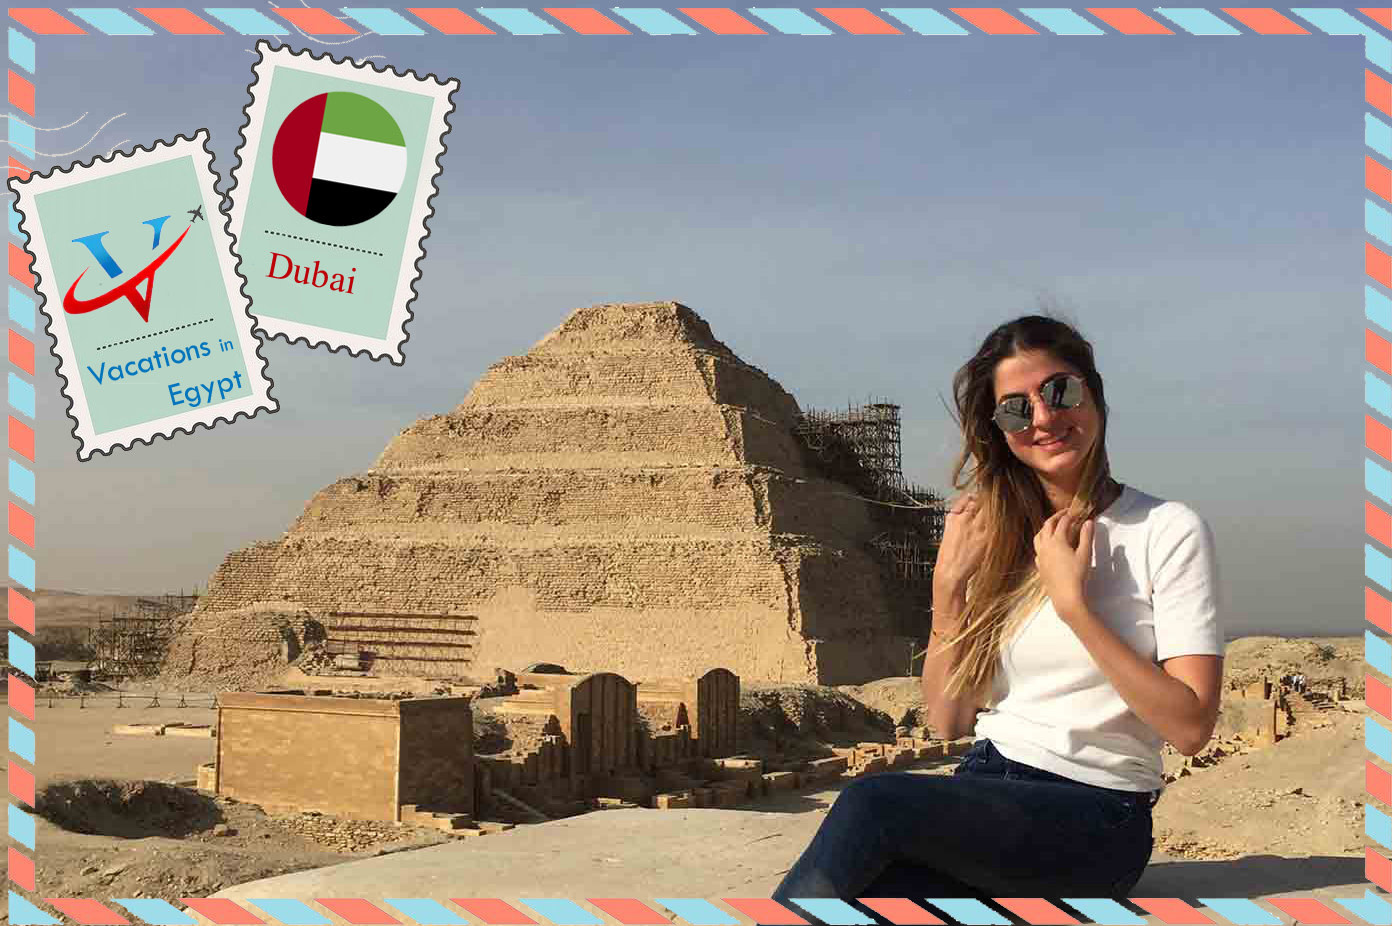 Egypt vacation packages from Dubai